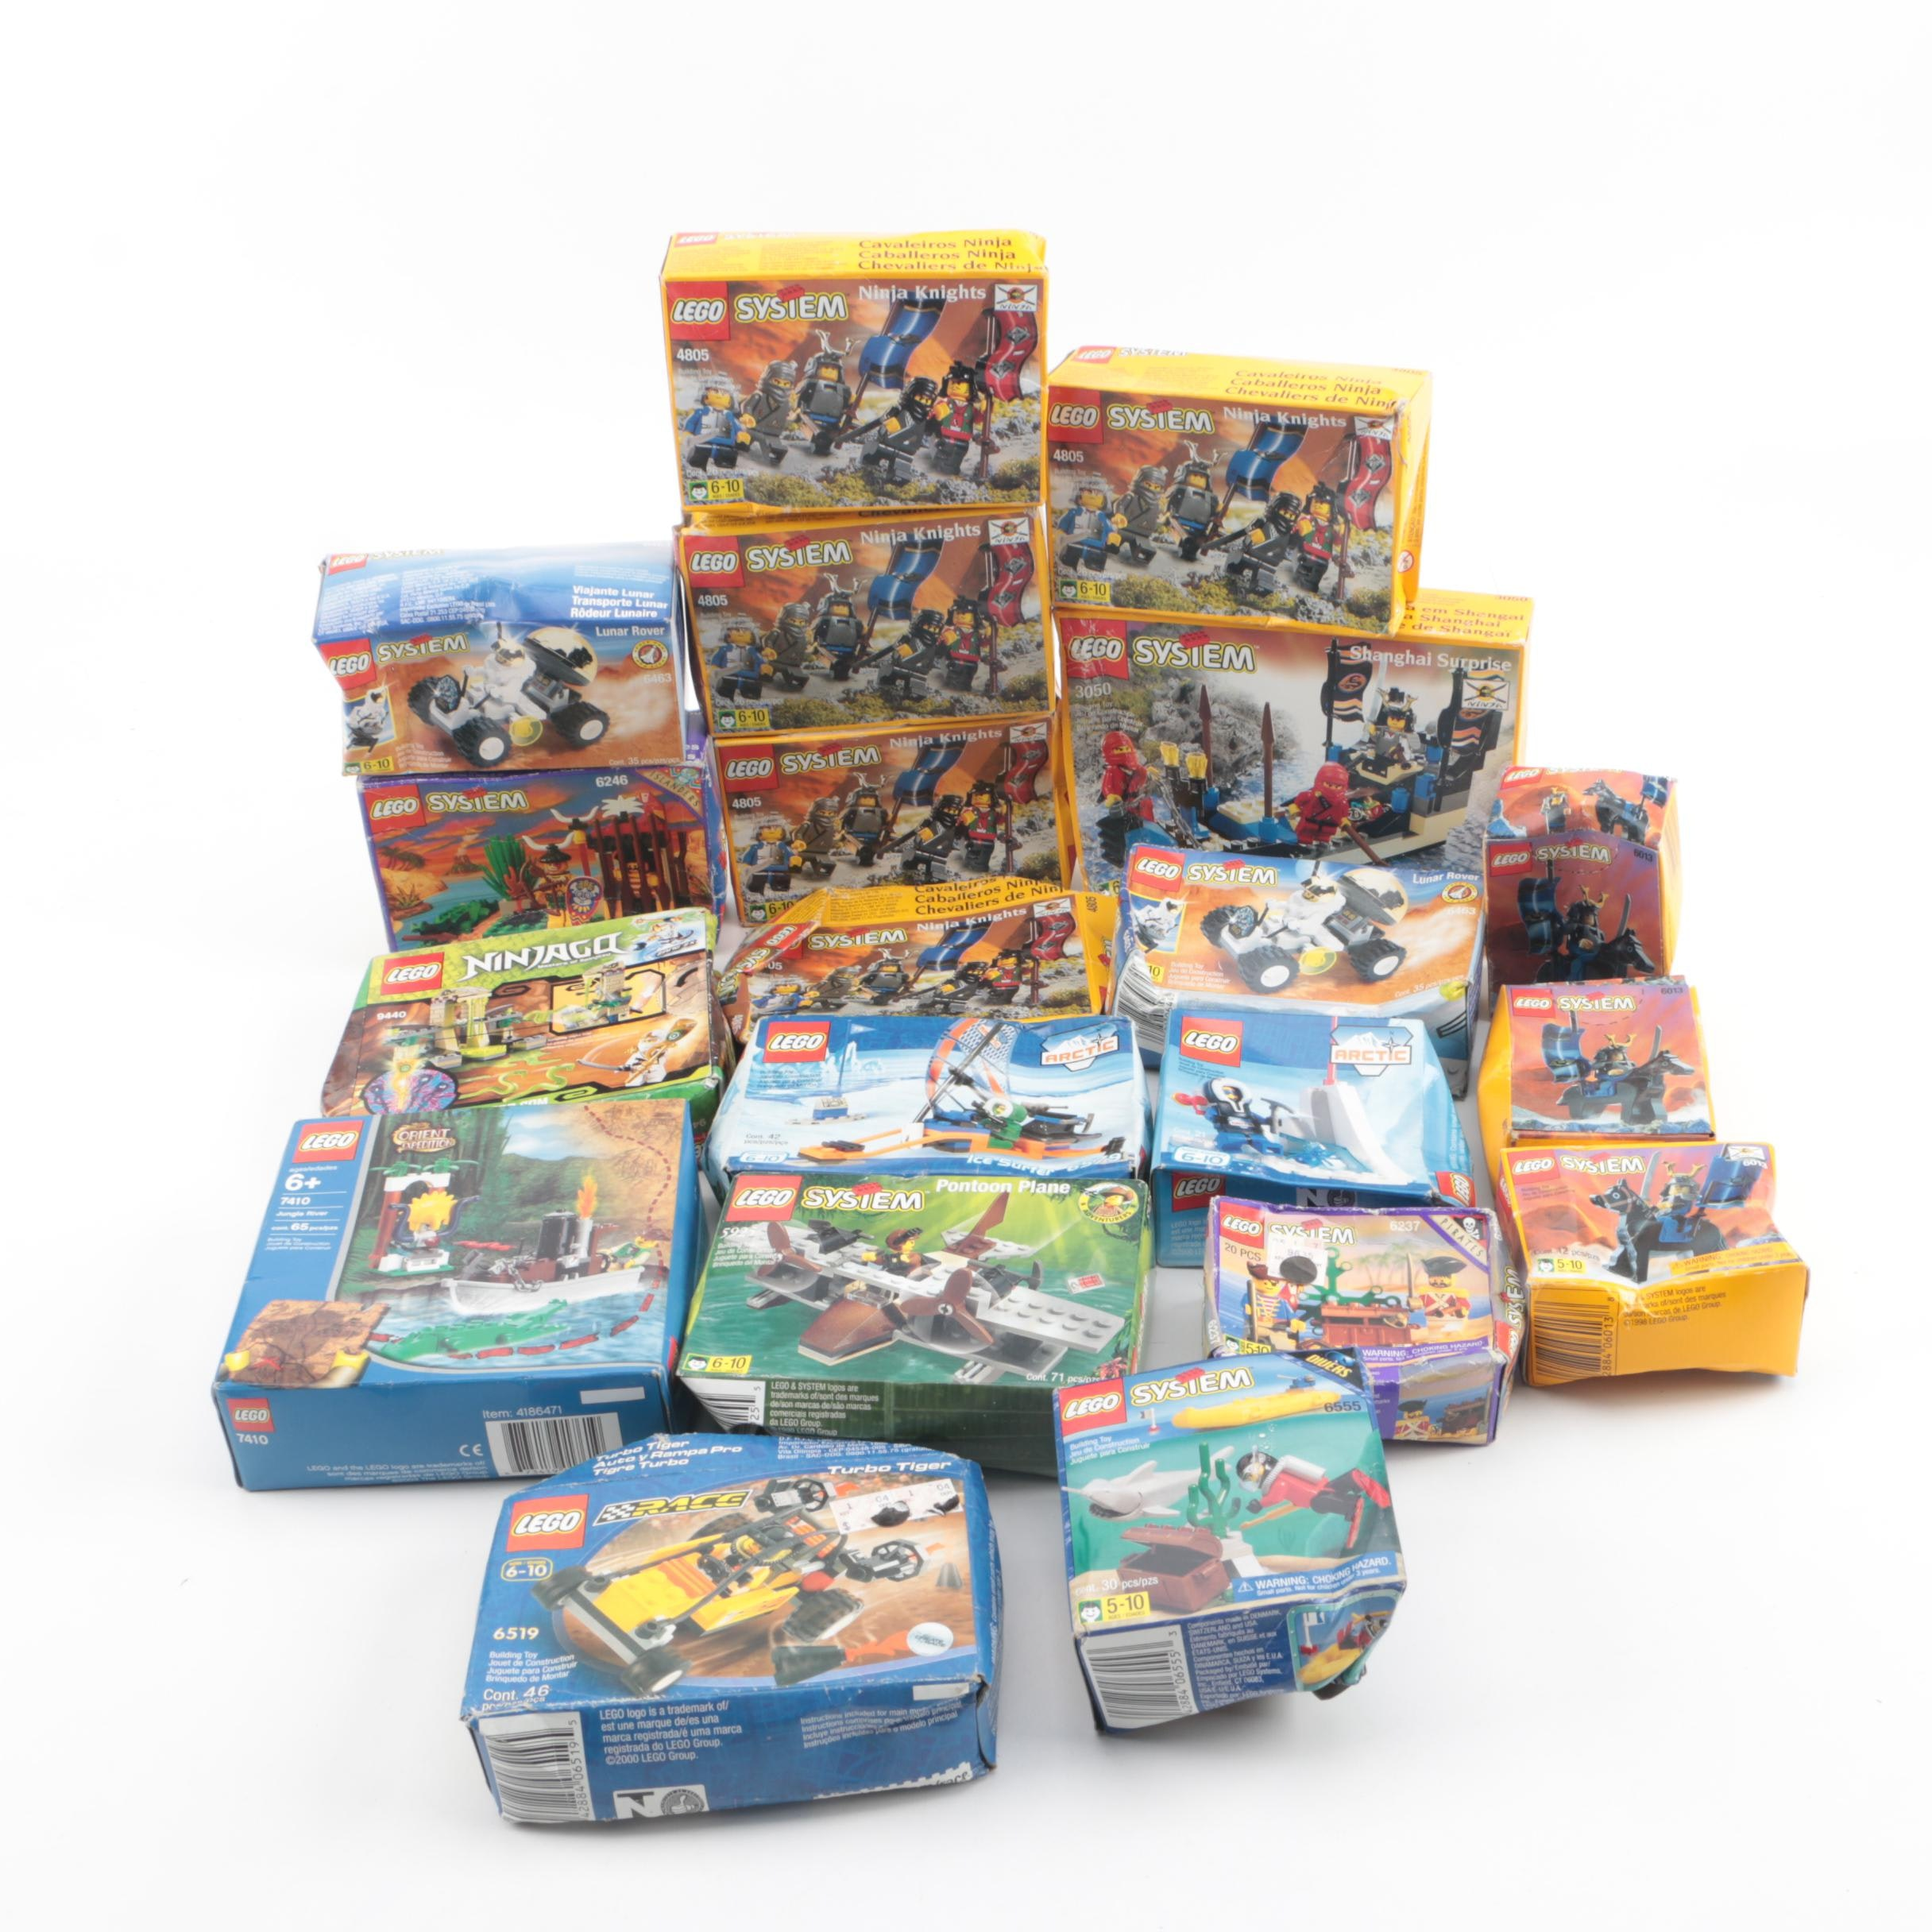 LEGO Sets Including Ninjago, Orient Expedition, and System Sets